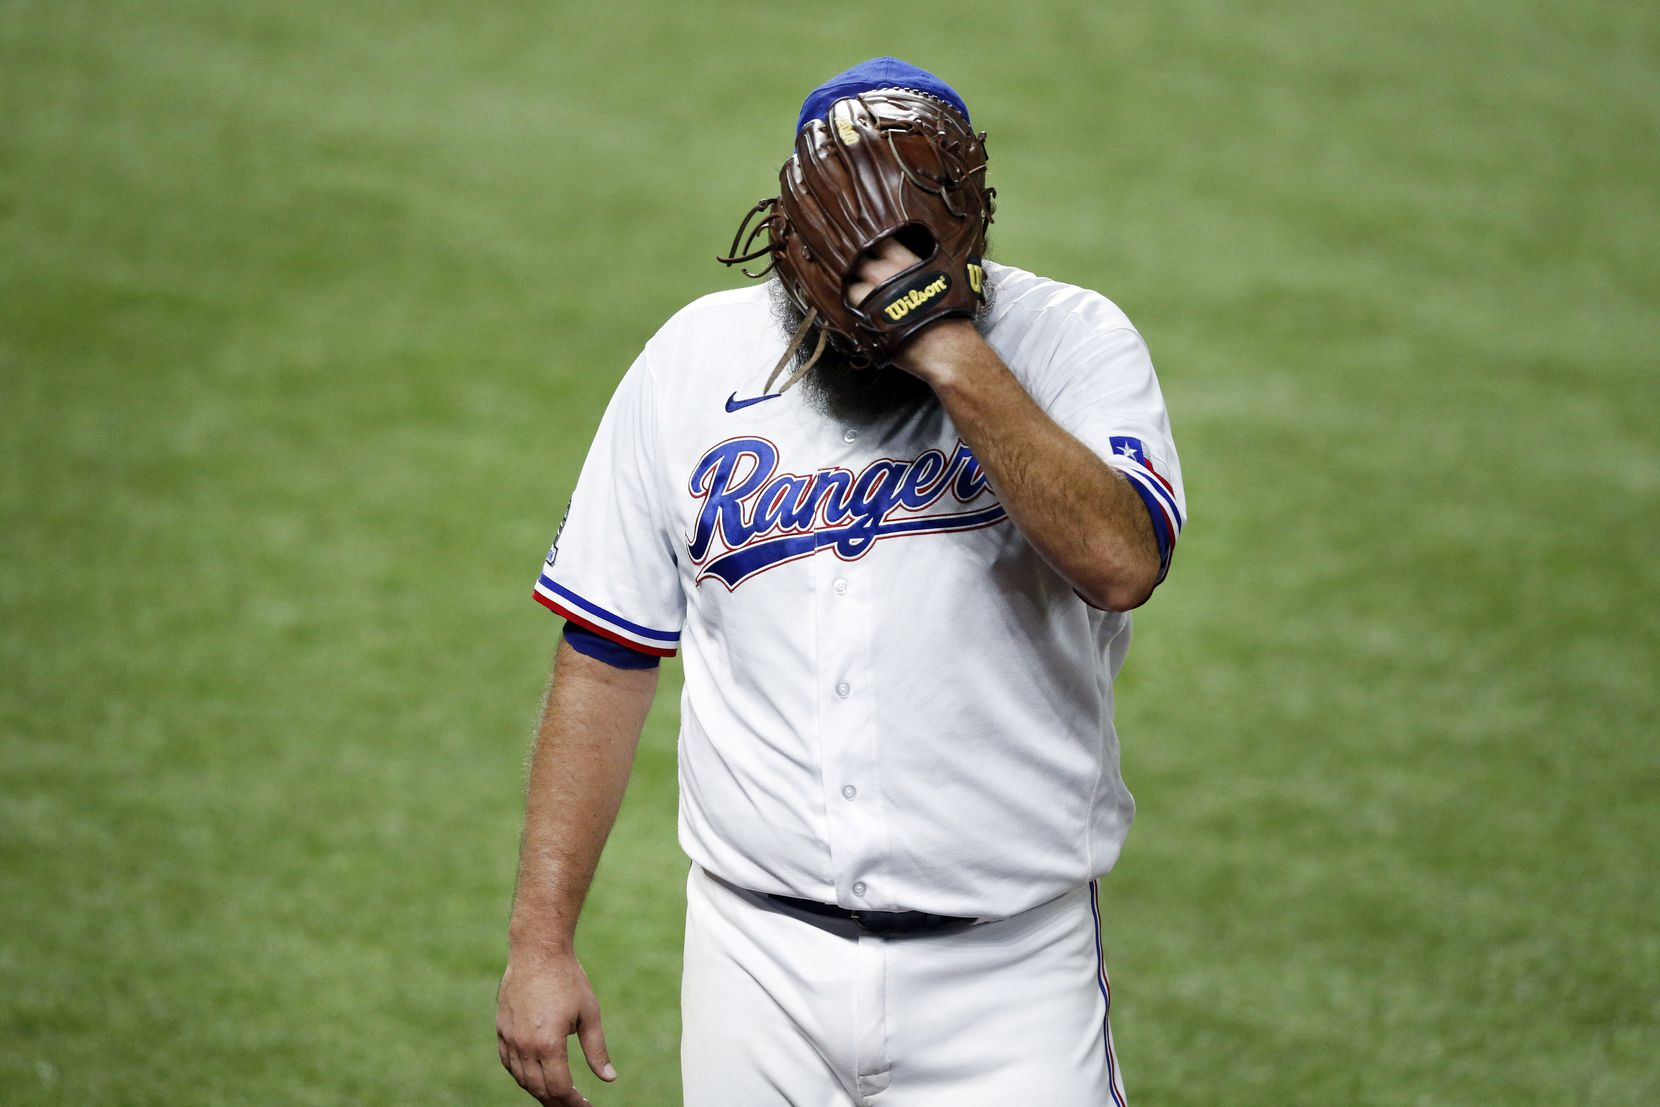 Texas Rangers starting pitcher Lance Lynn (35) covers his face as he walks to the dugout during the fourth inning in which he hit Los Angeles Angels batter Justin Upton at Globe Life Field in Arlington, Texas, Tuesday, September 8, 2020. Upton left the game. (Tom Fox/The Dallas Morning News)